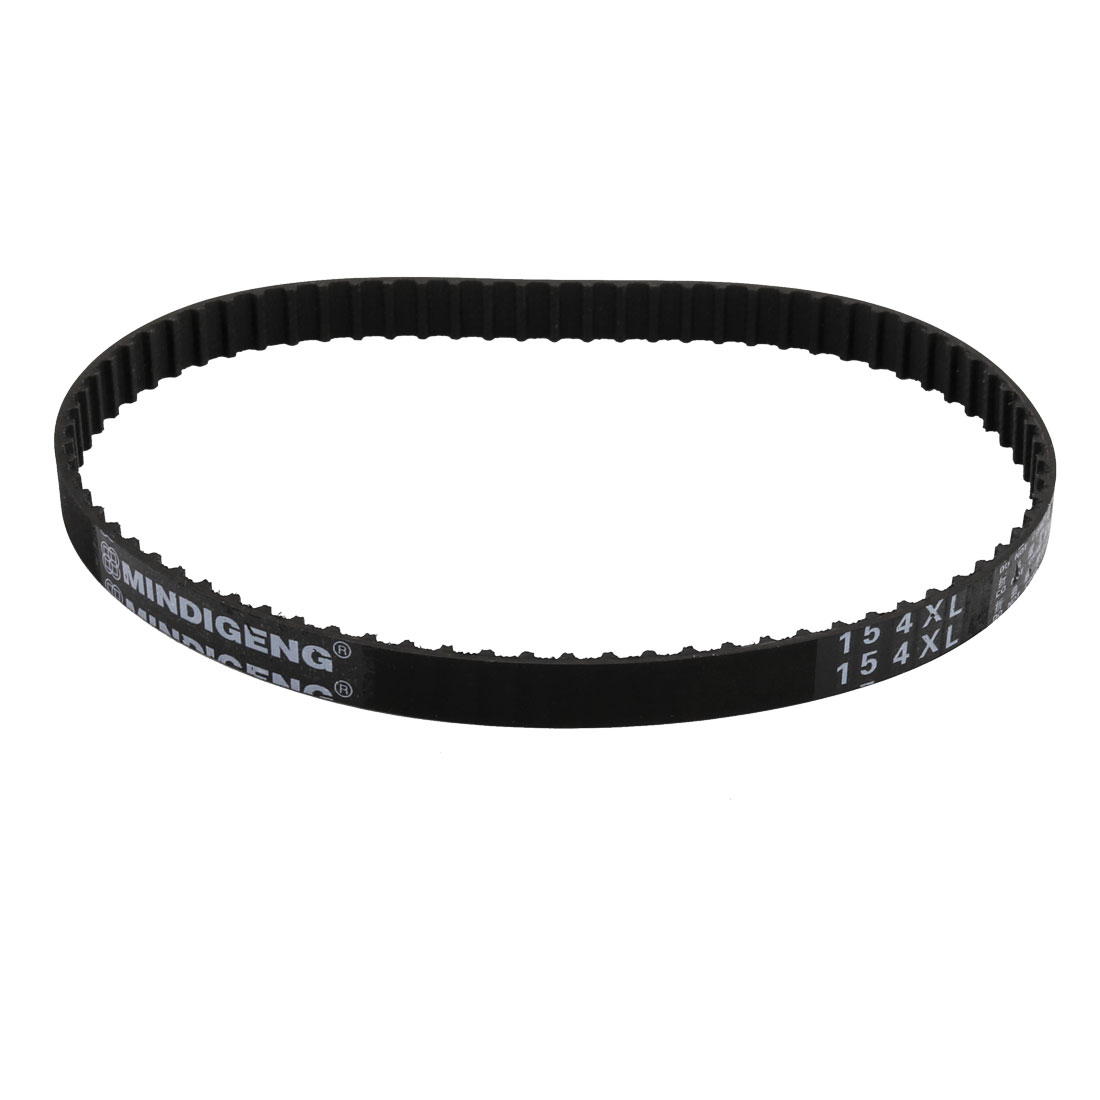 154XL 77 Teeth 10mm Width 5.08mm Pitch Stepper Motor Rubber Timing Belt Black